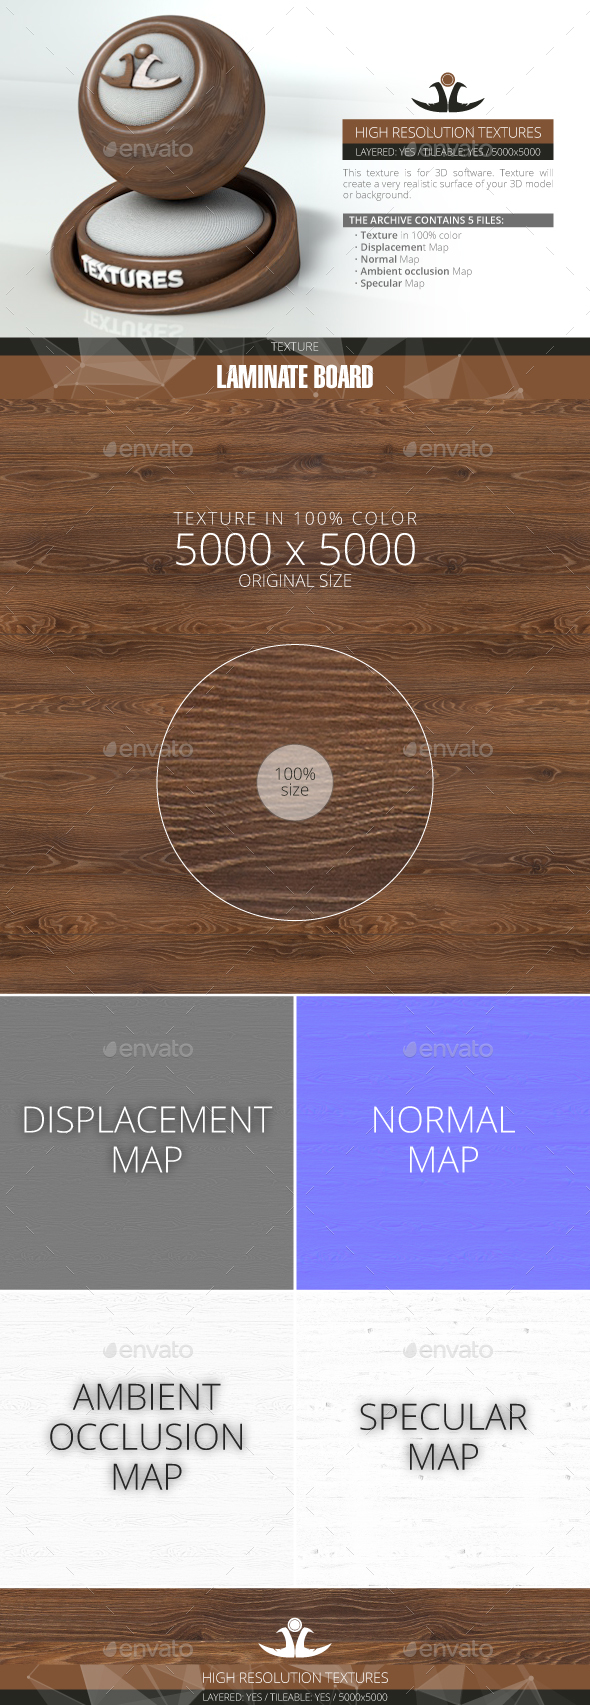 Laminate Board 10 - 3DOcean Item for Sale